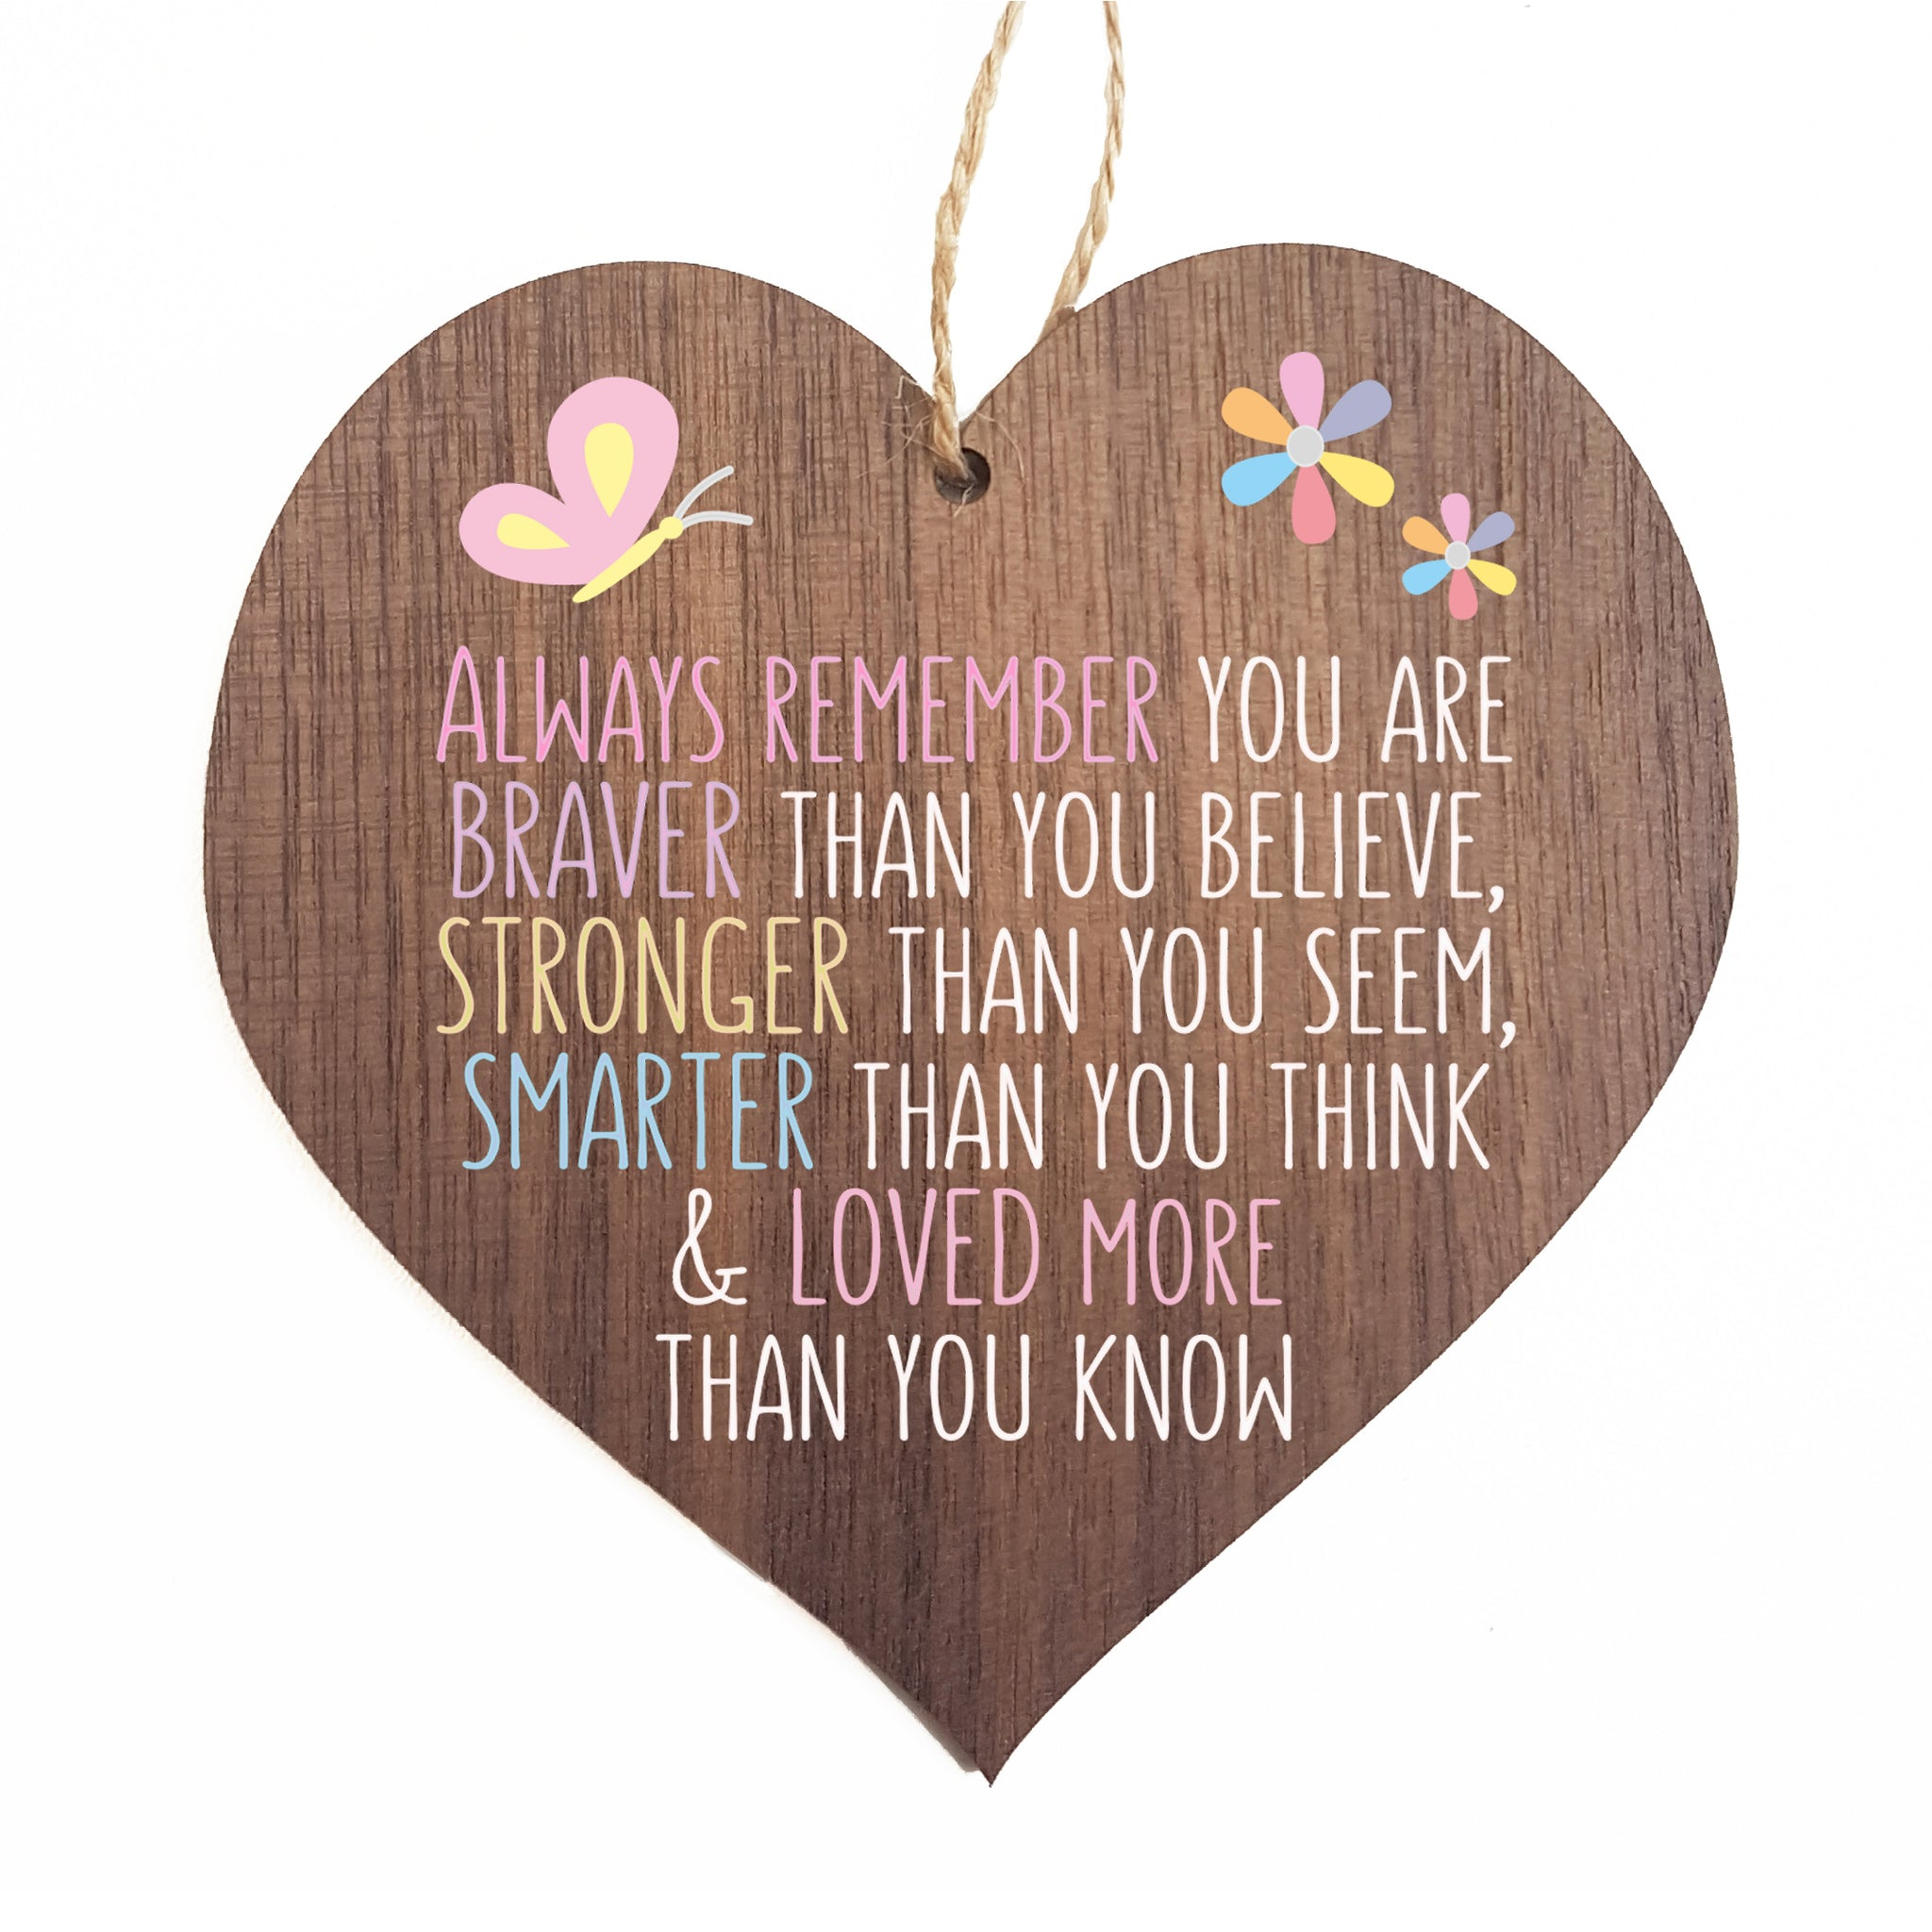 always remember you are braver than you believe stronger than you seem smarter than you think & loved more than you know